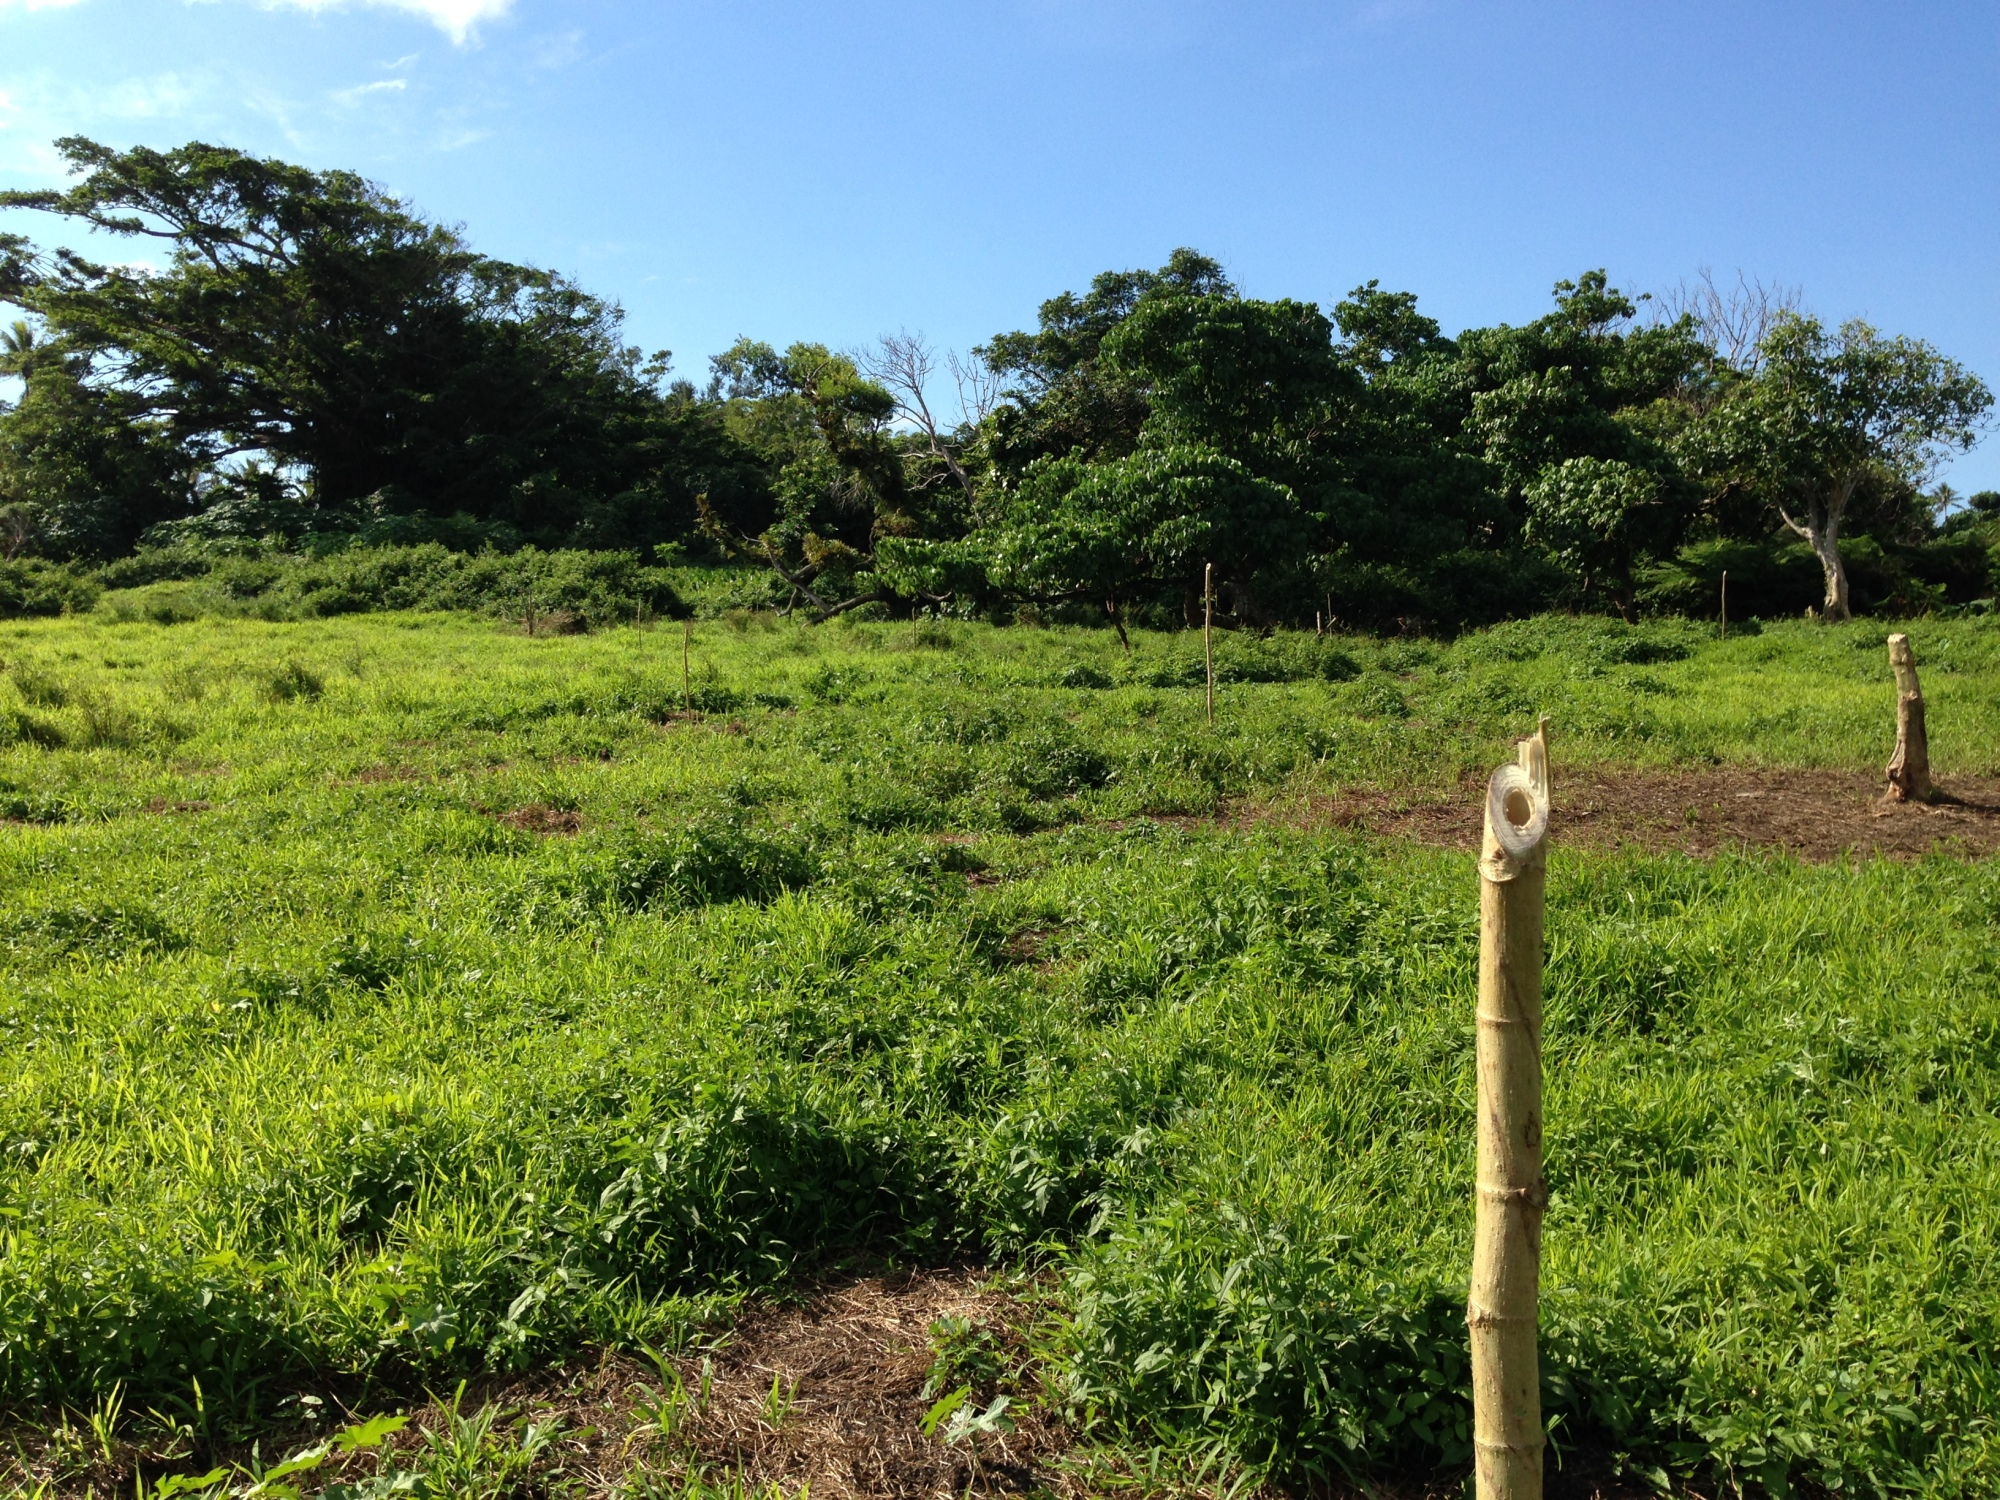 Tom Kendall analyses the landscape on the island of Tanna in Vanuatu for a Primary School.